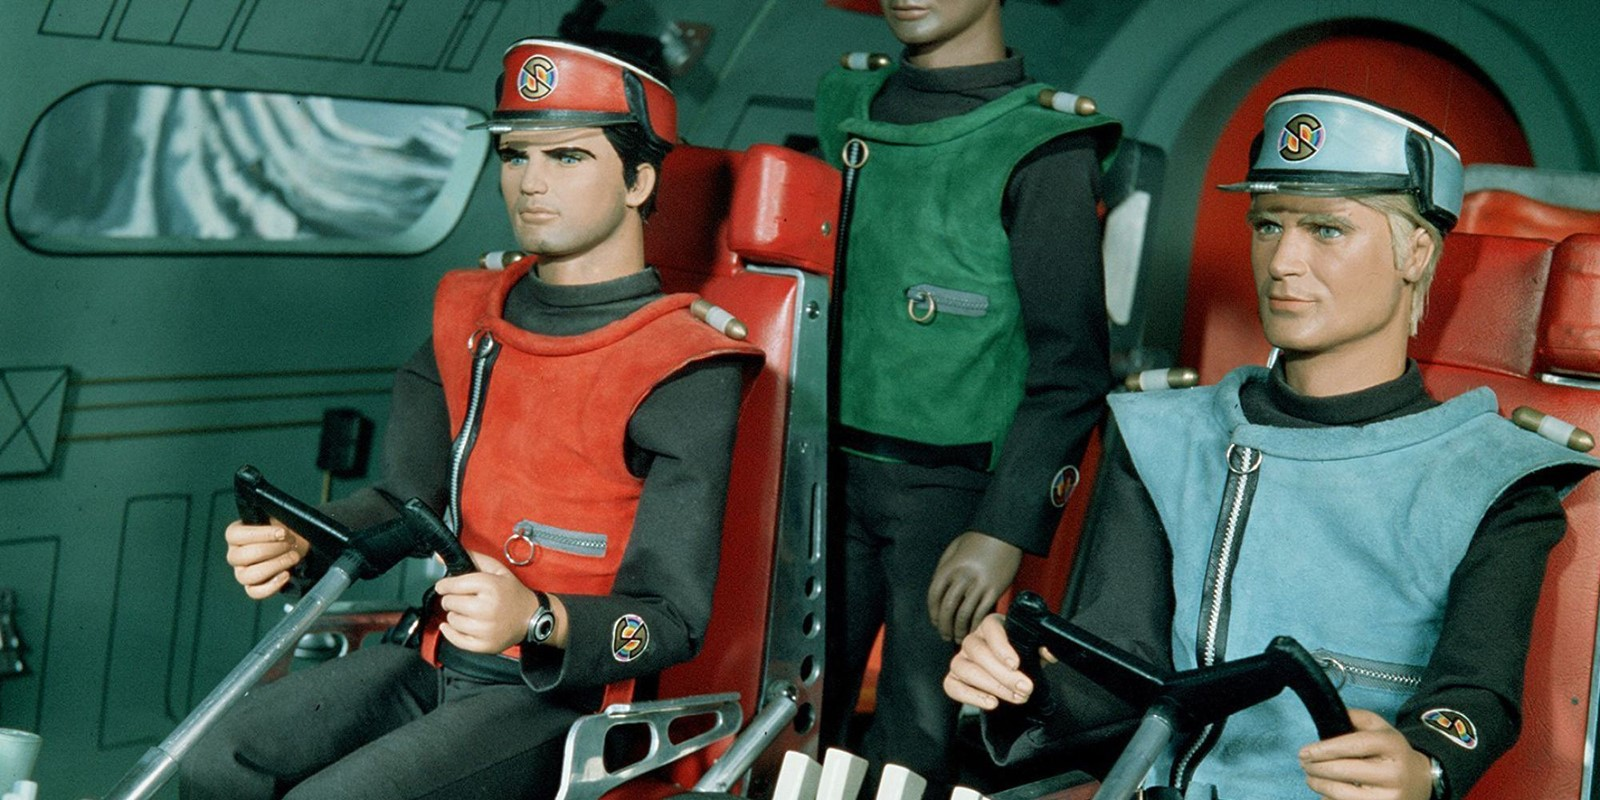 EDITORIAL USE ONLY / NO MERCHANDISING For merchandising, please contact James Feltham, james.feltham@itv.com Mandatory Credit: Photo by Granada International/REX (1041562cg) Episode 21-Crater 101 'Captain Scarlet' TV 1967 STILL STILLS TV PROGRAMME SERIES